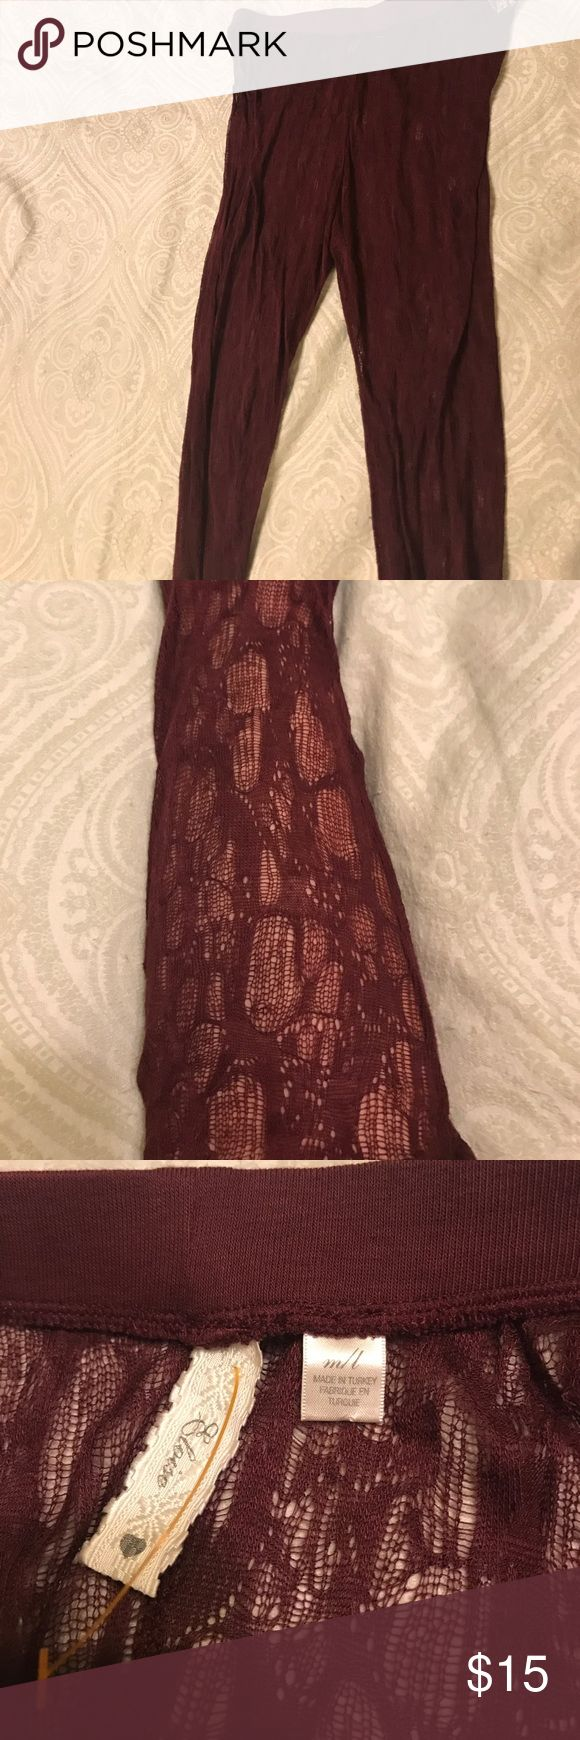 NWOT Footless Tights Burgundy color Lace type footless tights. NWOT. Size M/L Anthropologie Accessories Hosiery & Socks